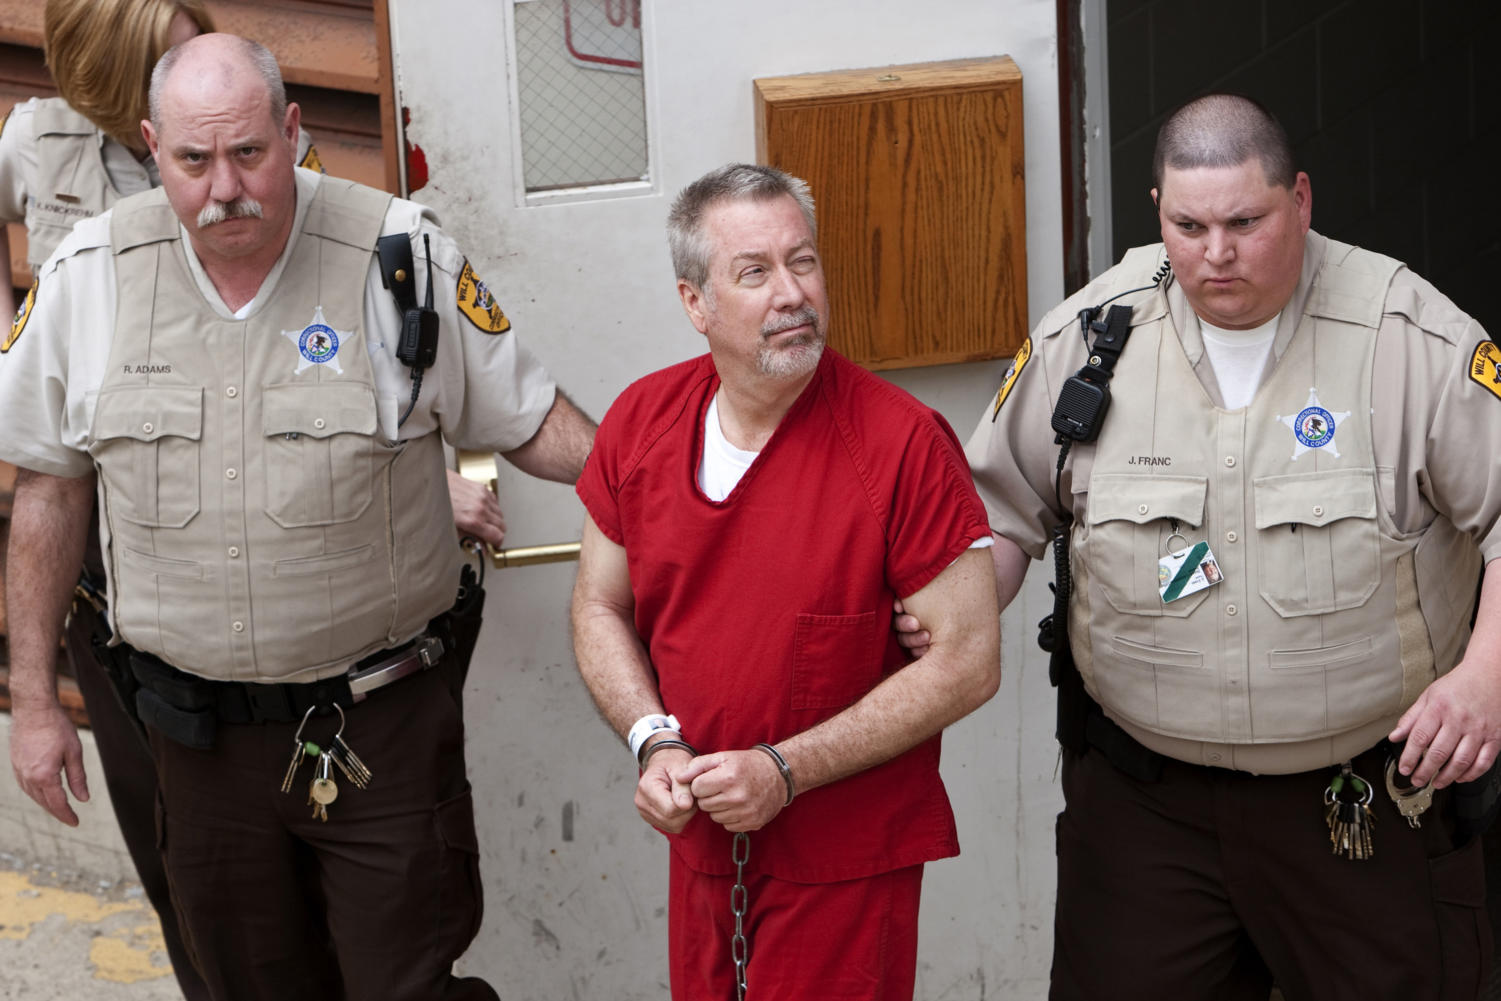 Convicted killer Drew Peterson, seen here in 2009, was sentenced in 2013 for murdering his third wife, Kathleen Savio, who was found dead in 2004. (Zbigniew Bzdak/Chicago Tribune/TNS)